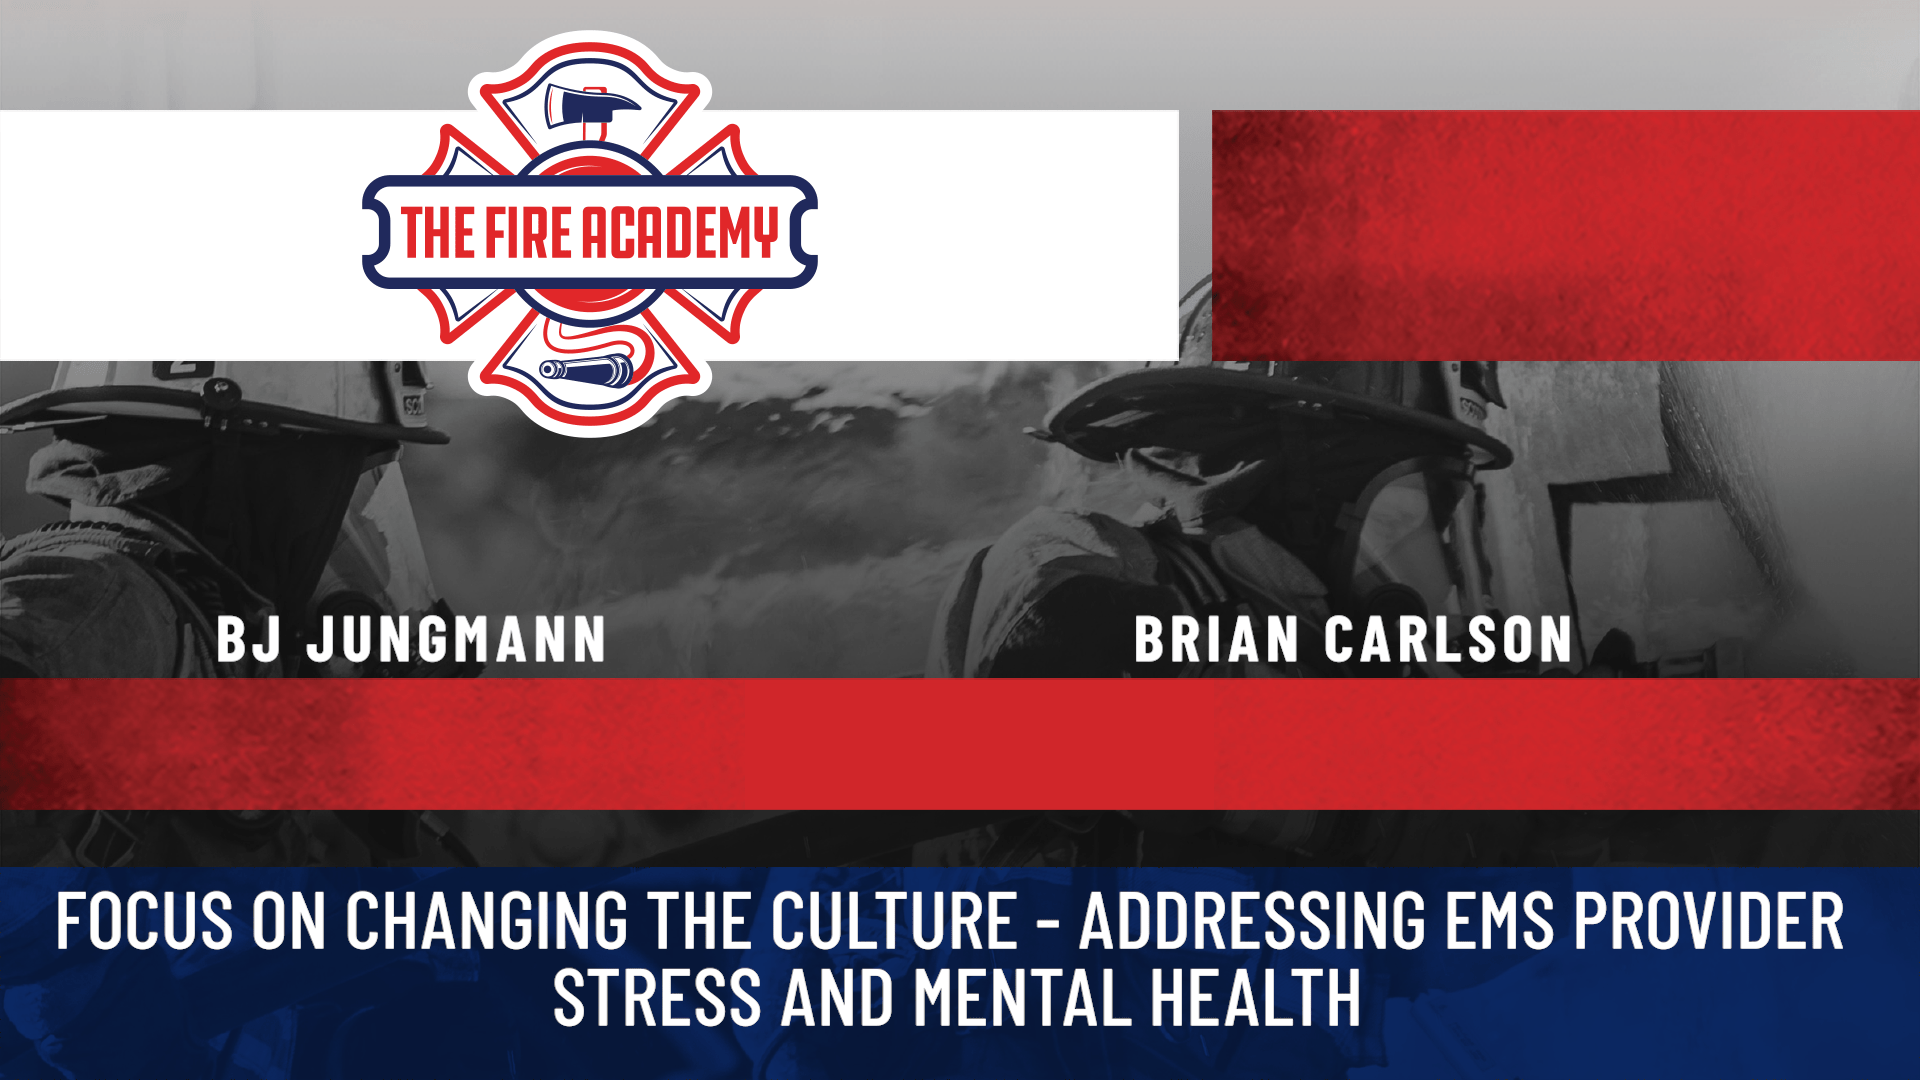 Focus on Changing the Culture – Addressing EMS Provider Stress and Mental Health